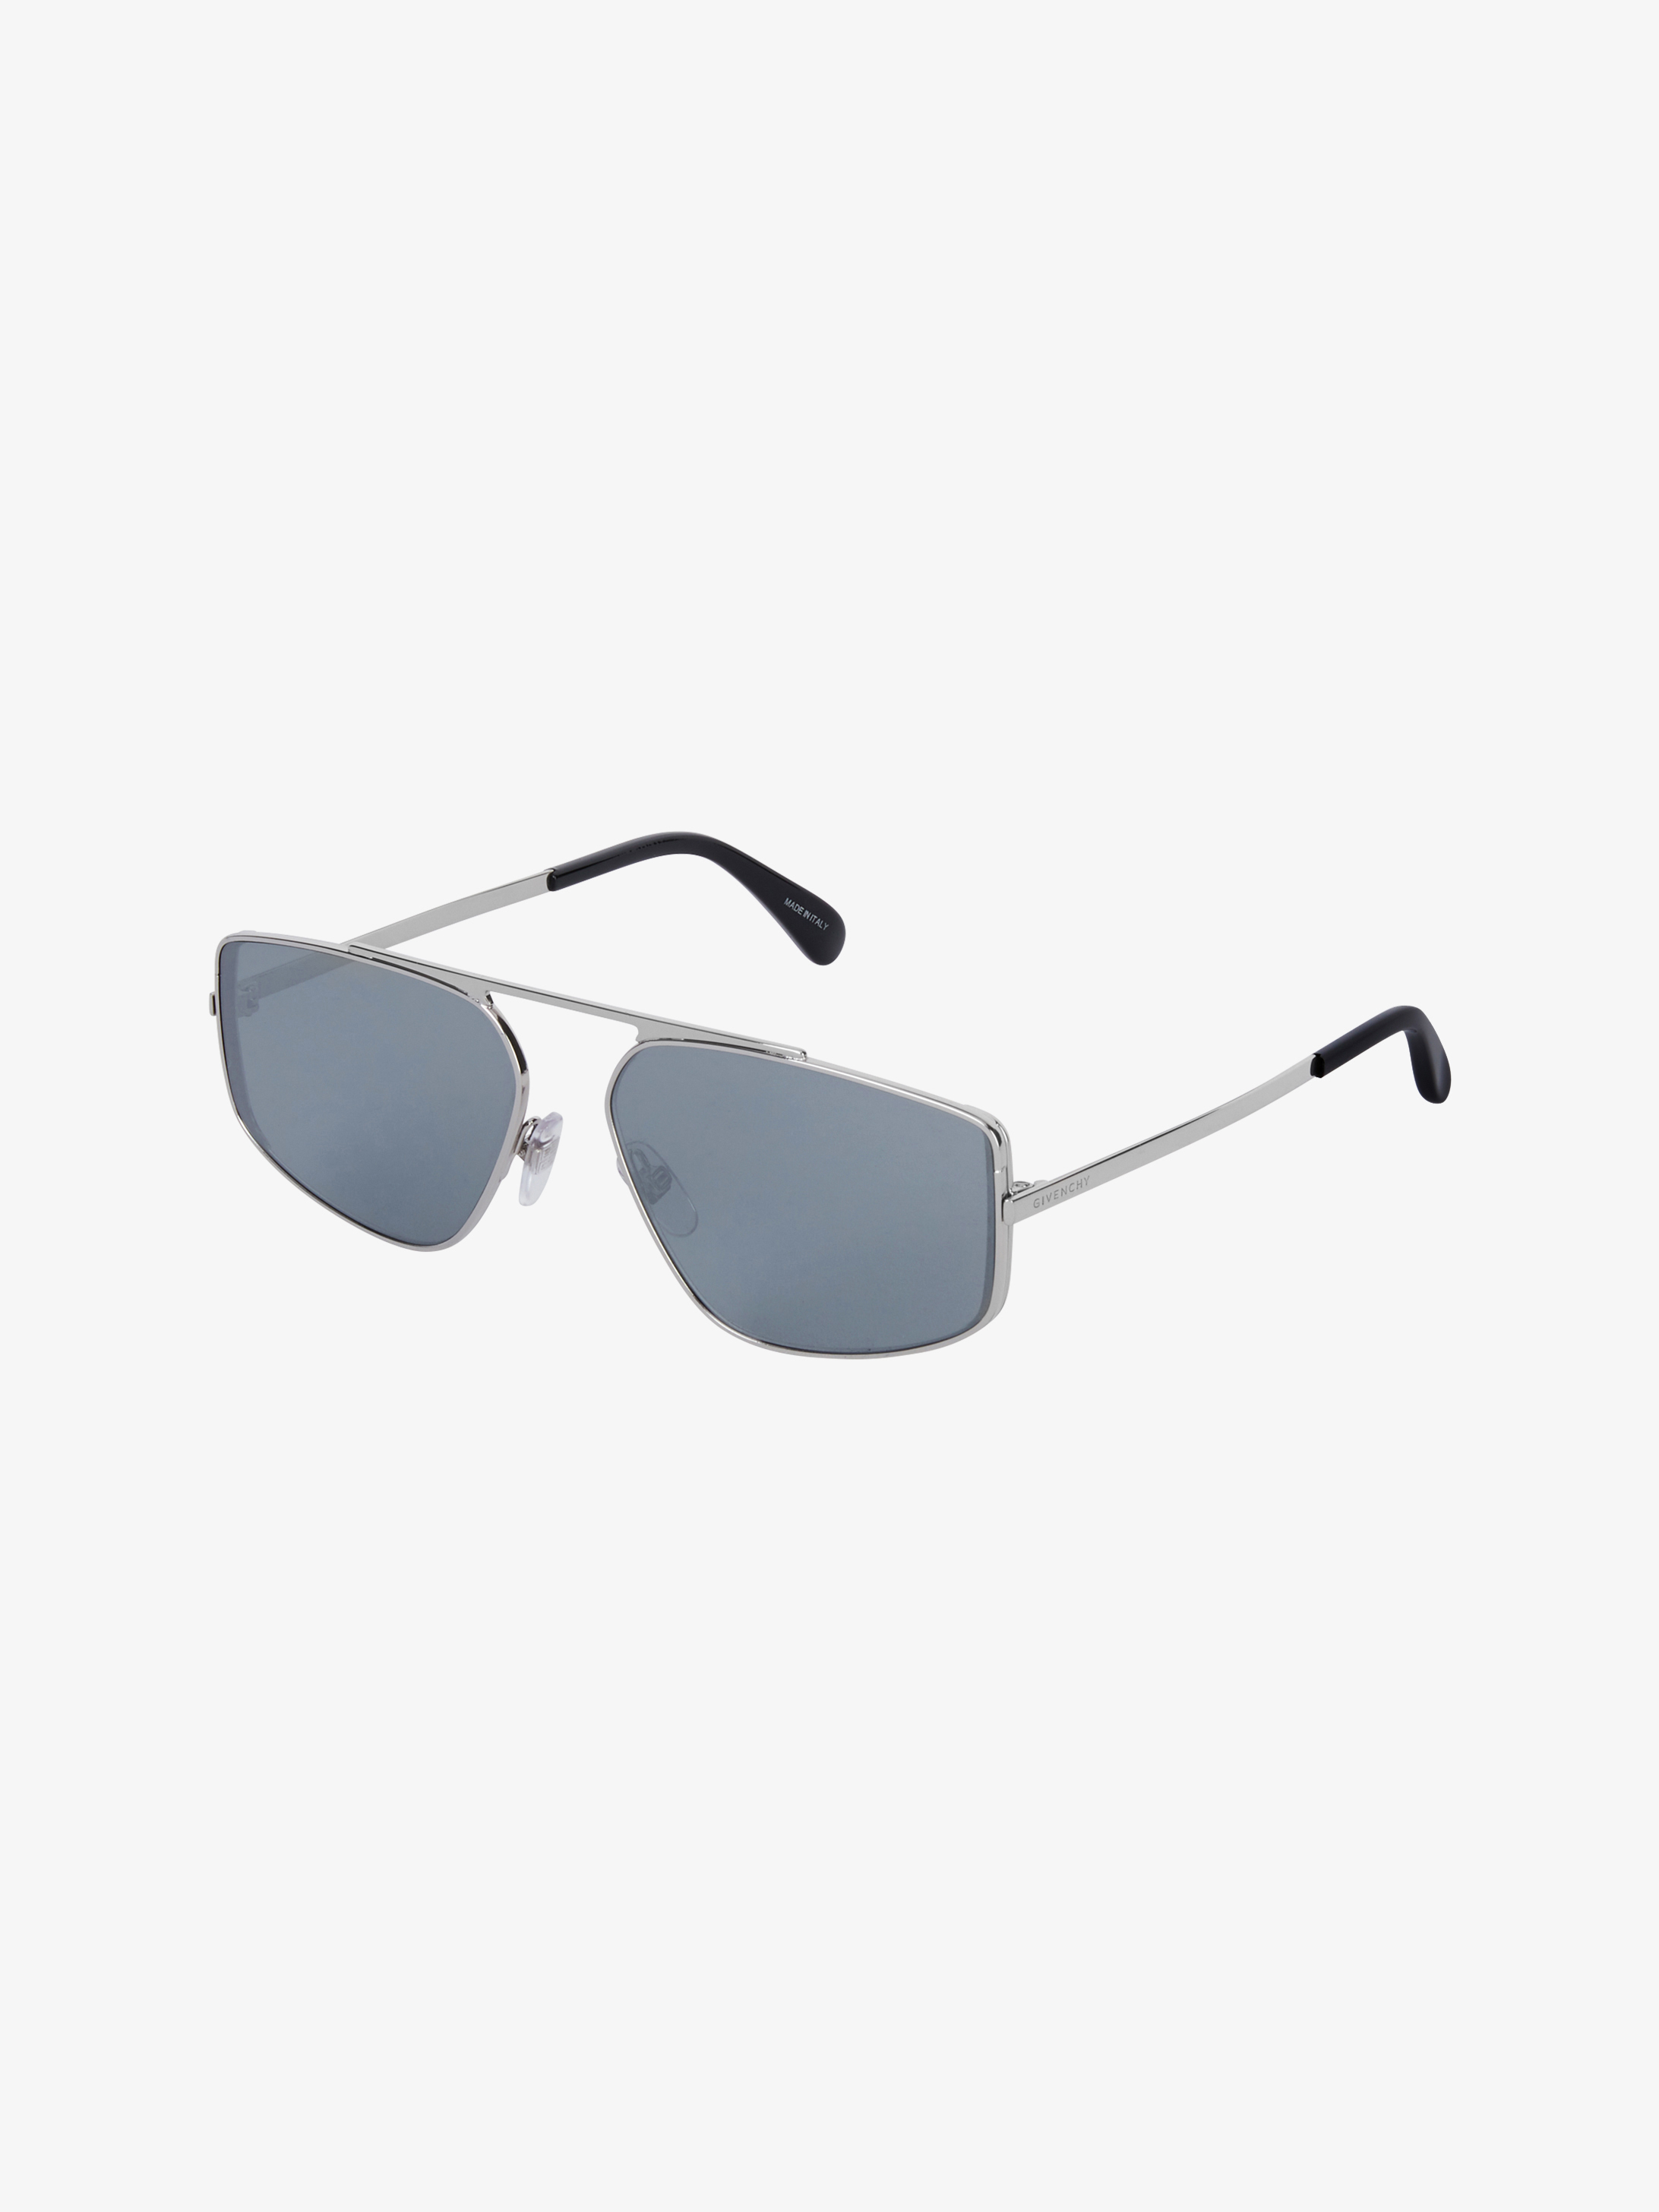 Unisex sunglasses in acetate and metal